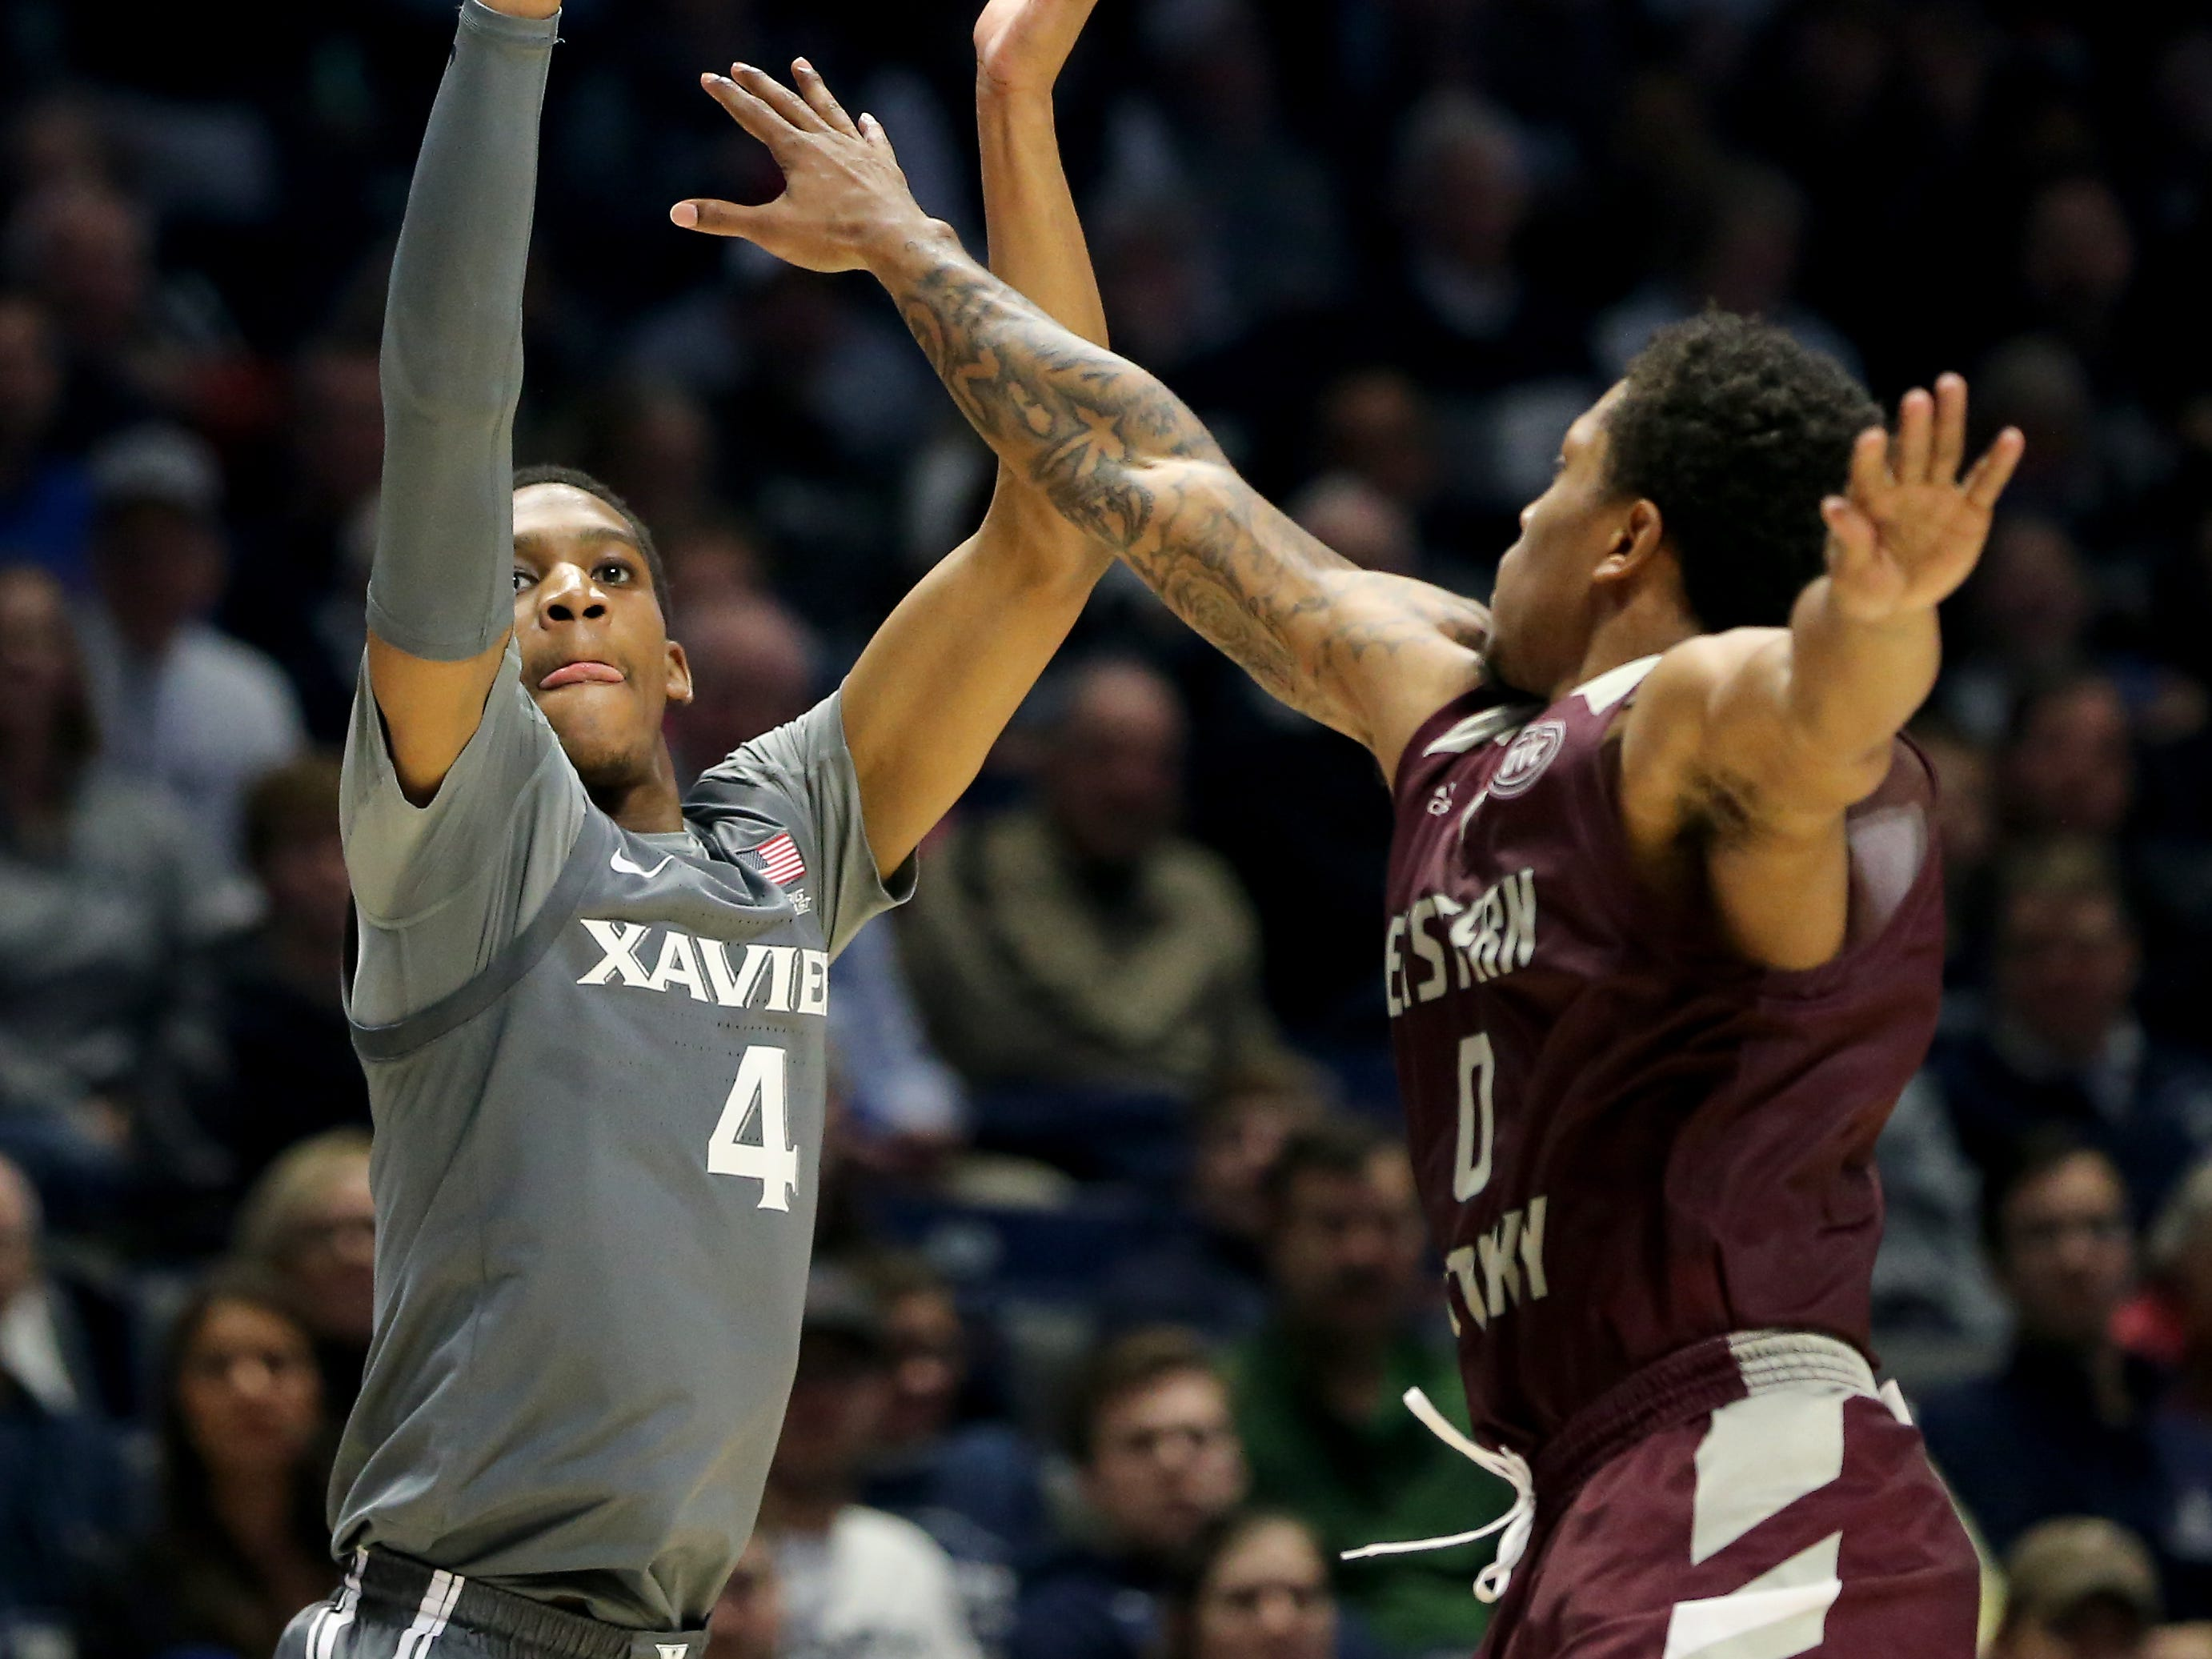 Xavier Musketeers guard Elias Harden (4) rises for a shot as Eastern Kentucky Colonels guard Dujuanta Weaver (0) defends in the second half of an NCAA college basketball game, Saturday, Dec. 15, 2018, at Cintas Center in Cincinnati, Ohio